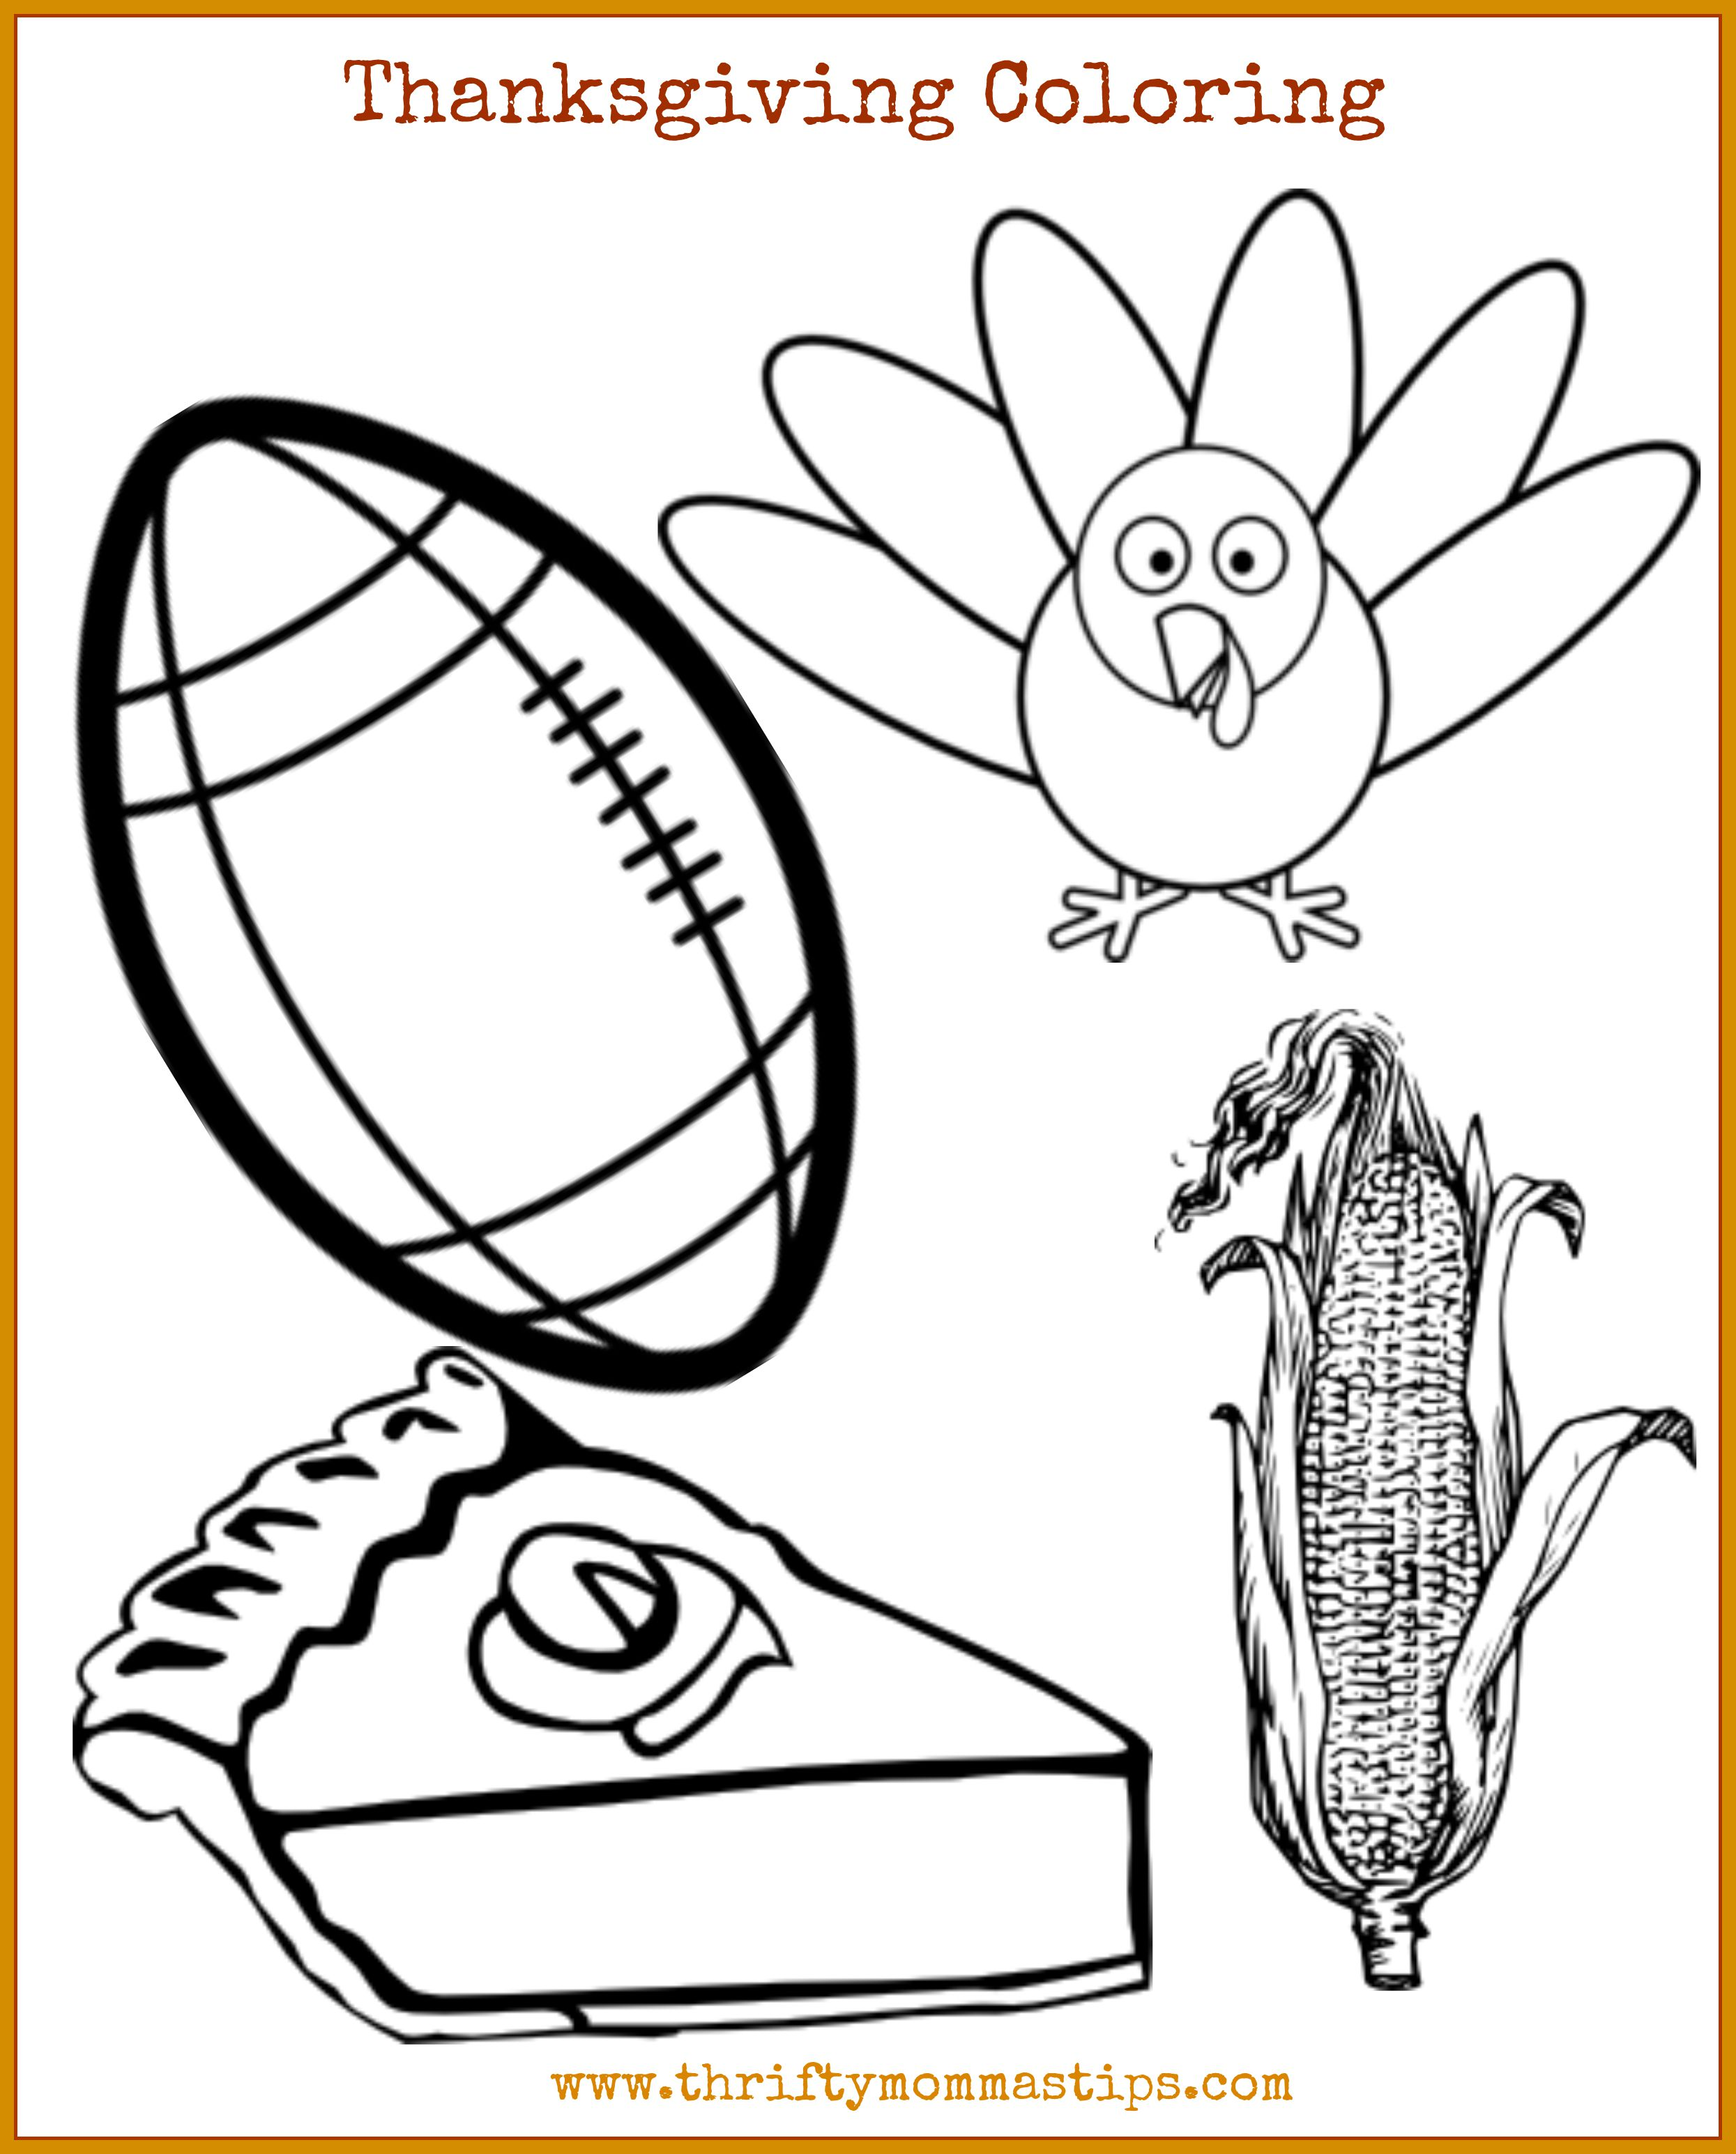 Get This Free Thanksgiving Coloring Sheet Now - Thrifty ...